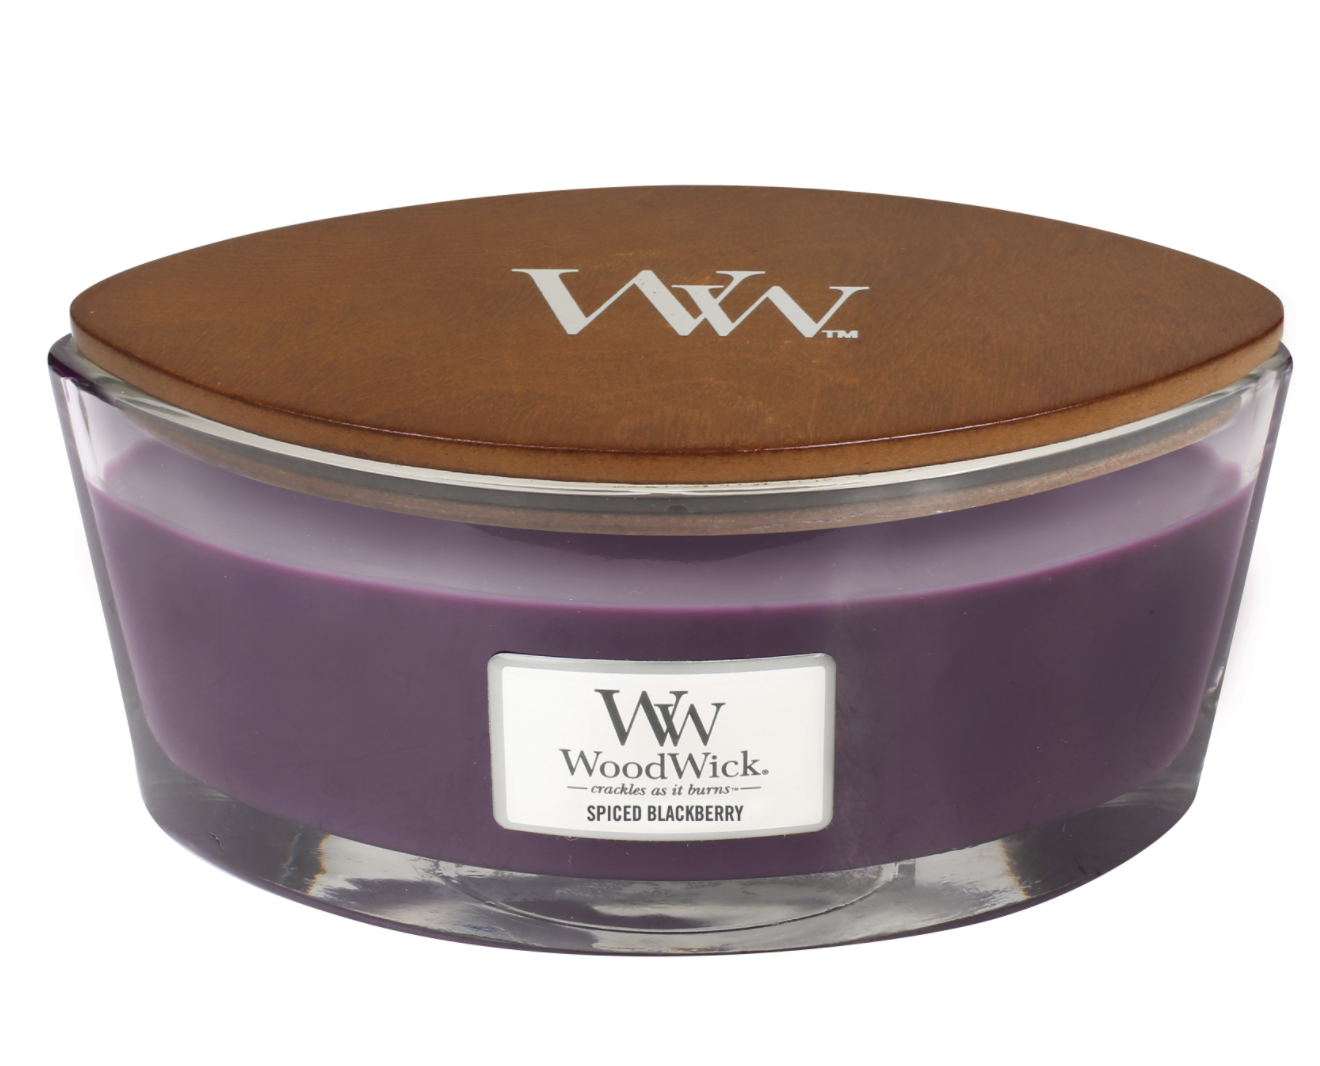 the hourglass shaped purple candle with a wooden wick